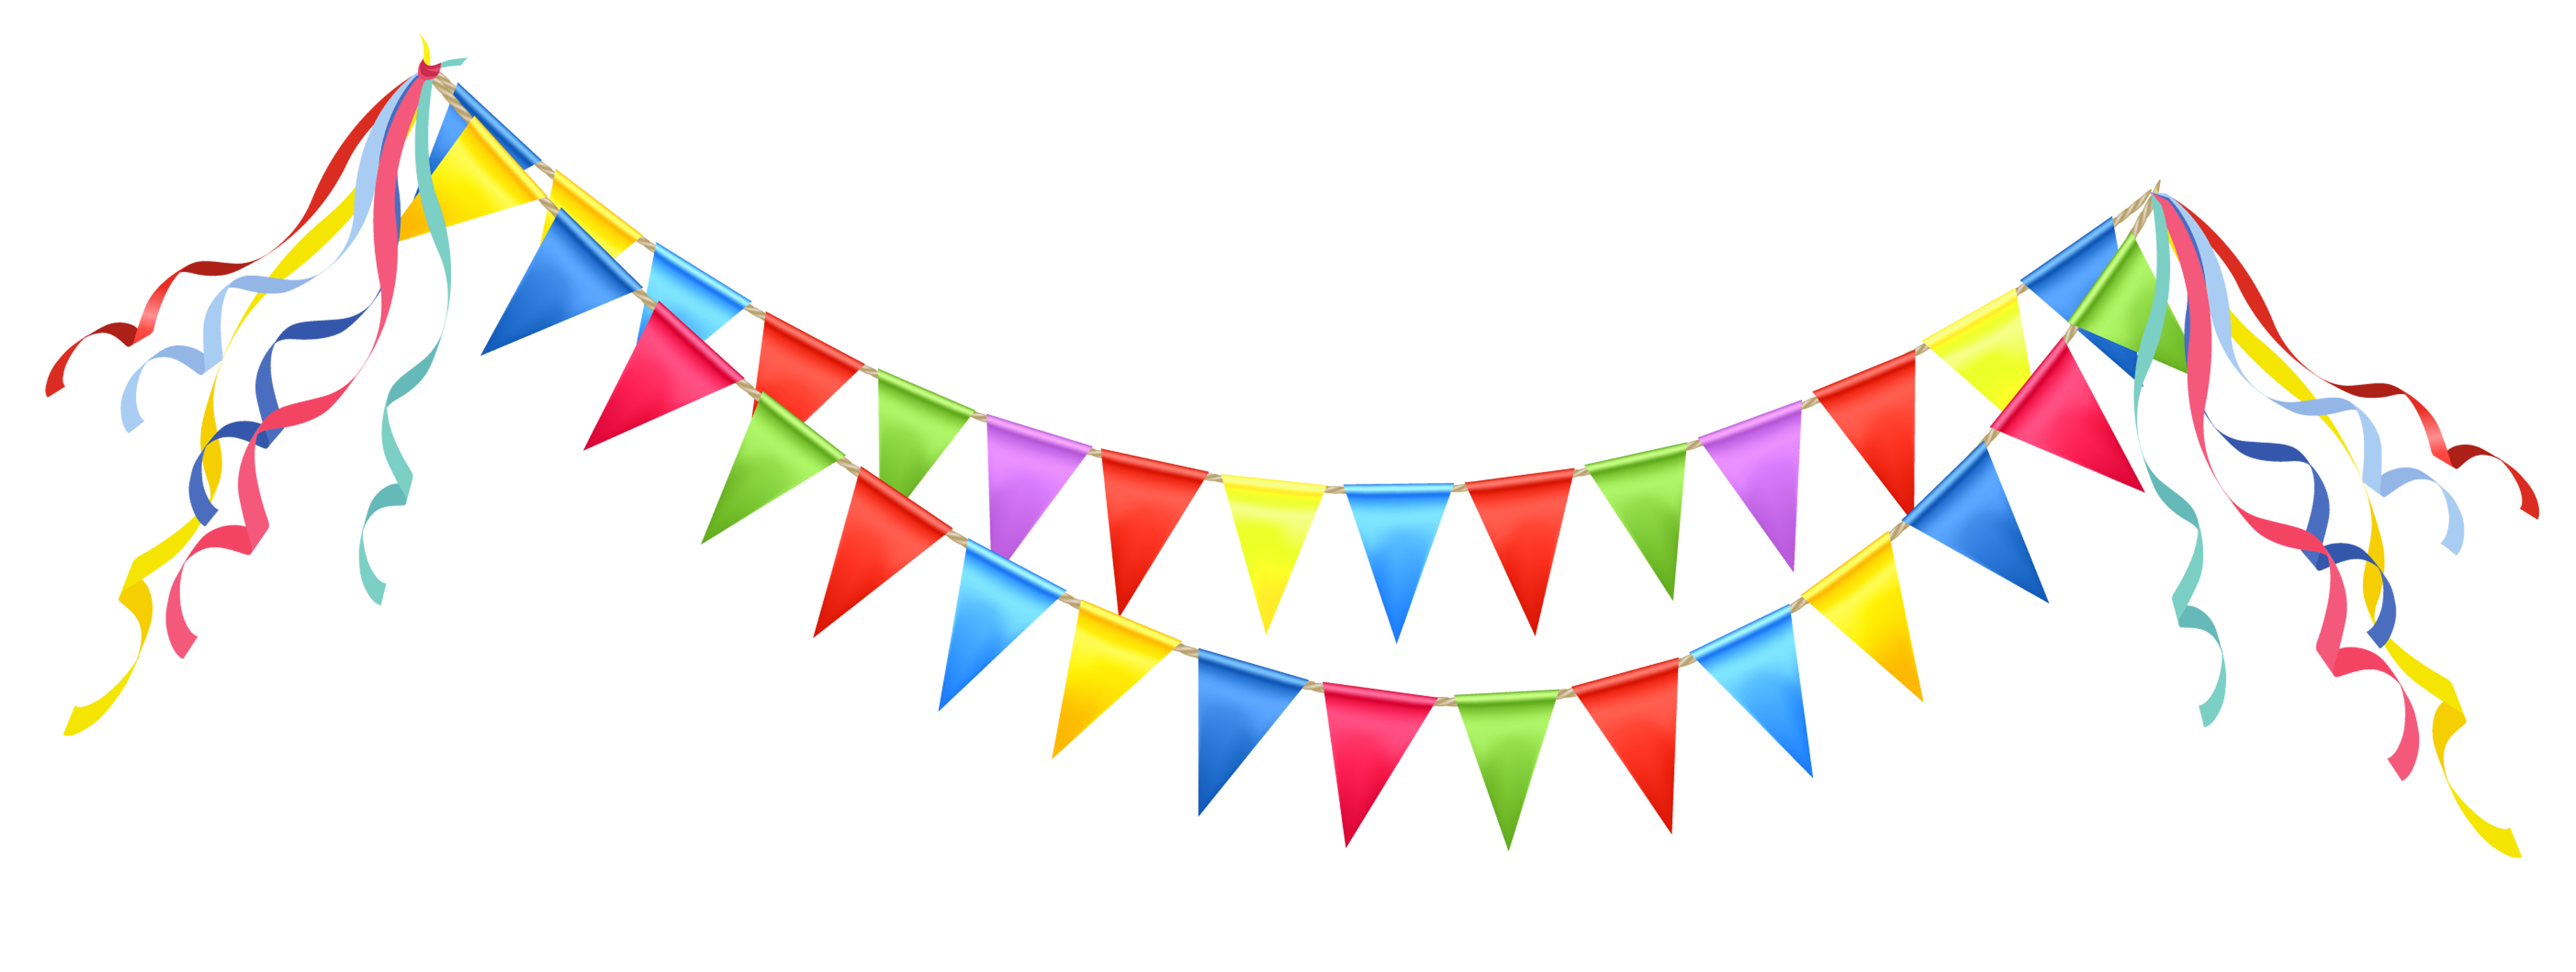 Celebrate clipart banner. Birthday party celebration jokingart